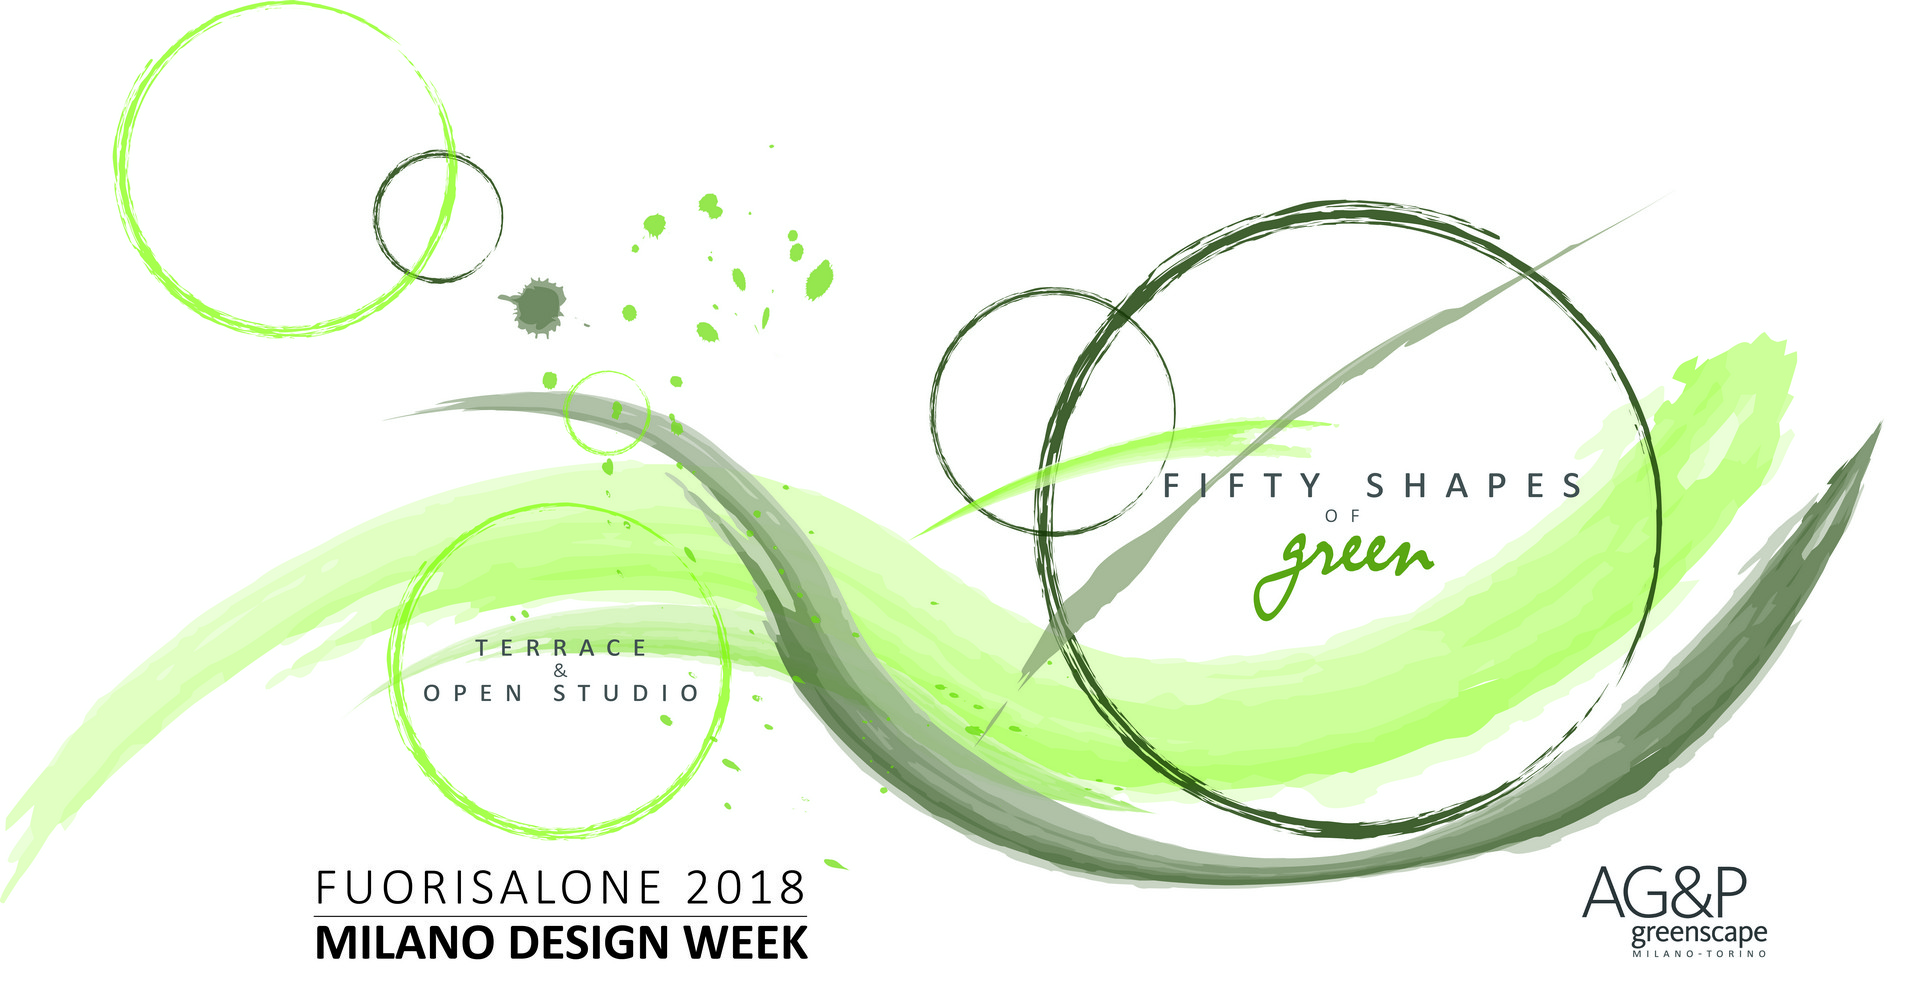 Open Studio Fuorisalone 2018 – Fifty Shapes of Green